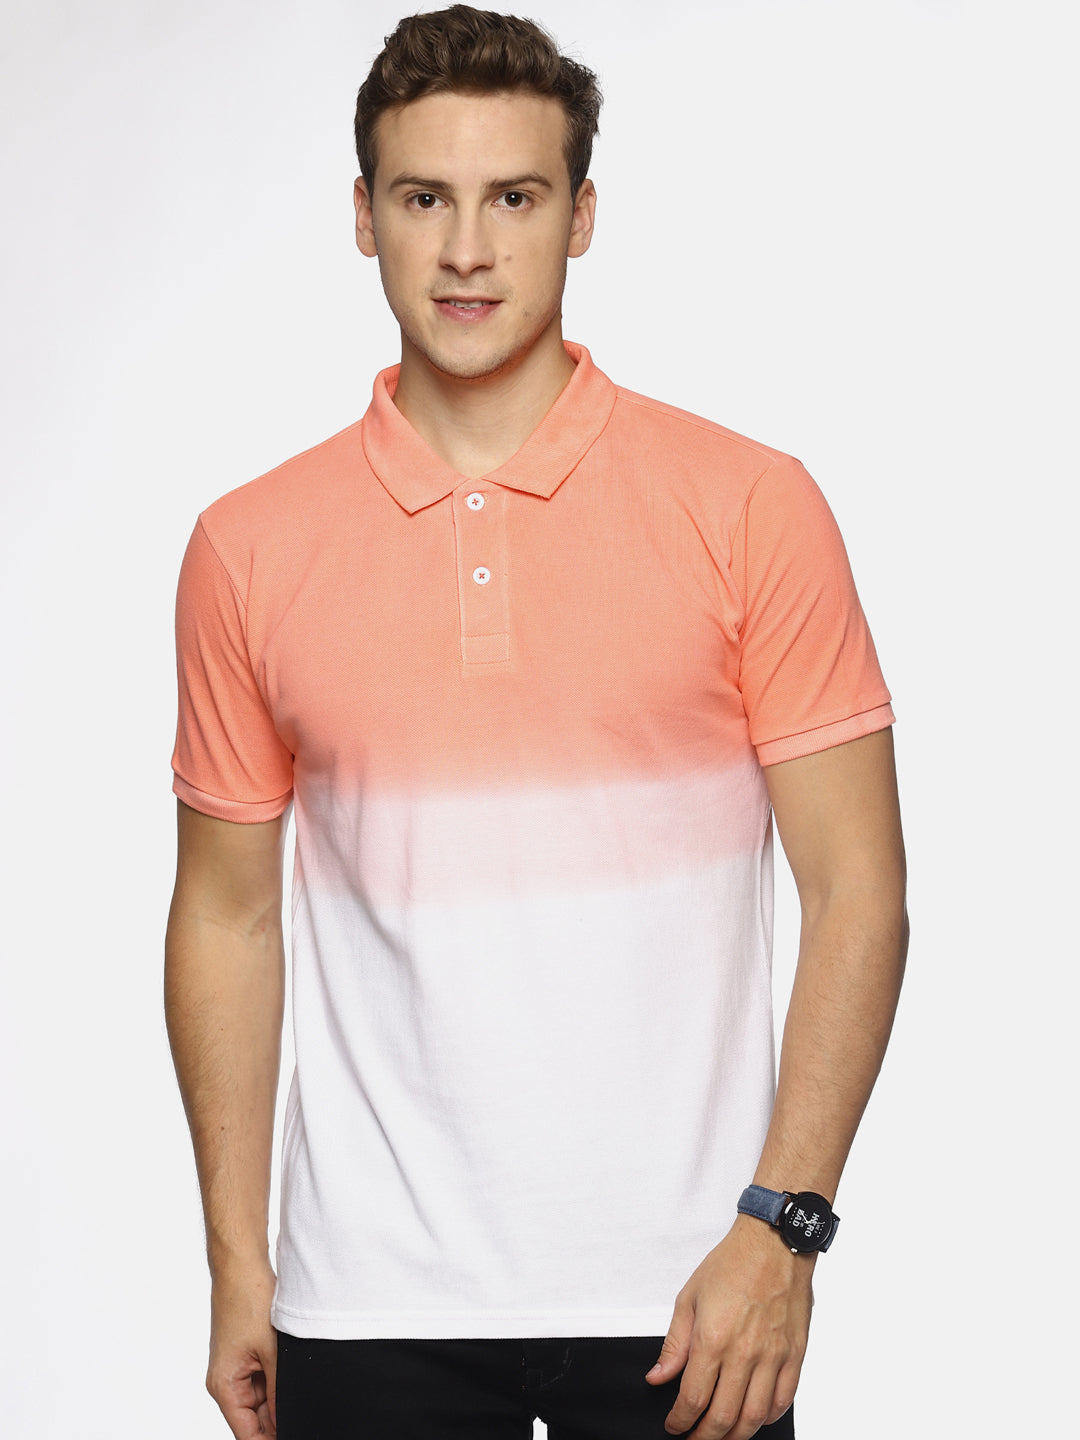 Men's Orange Dip Dyed Polo T-shirt